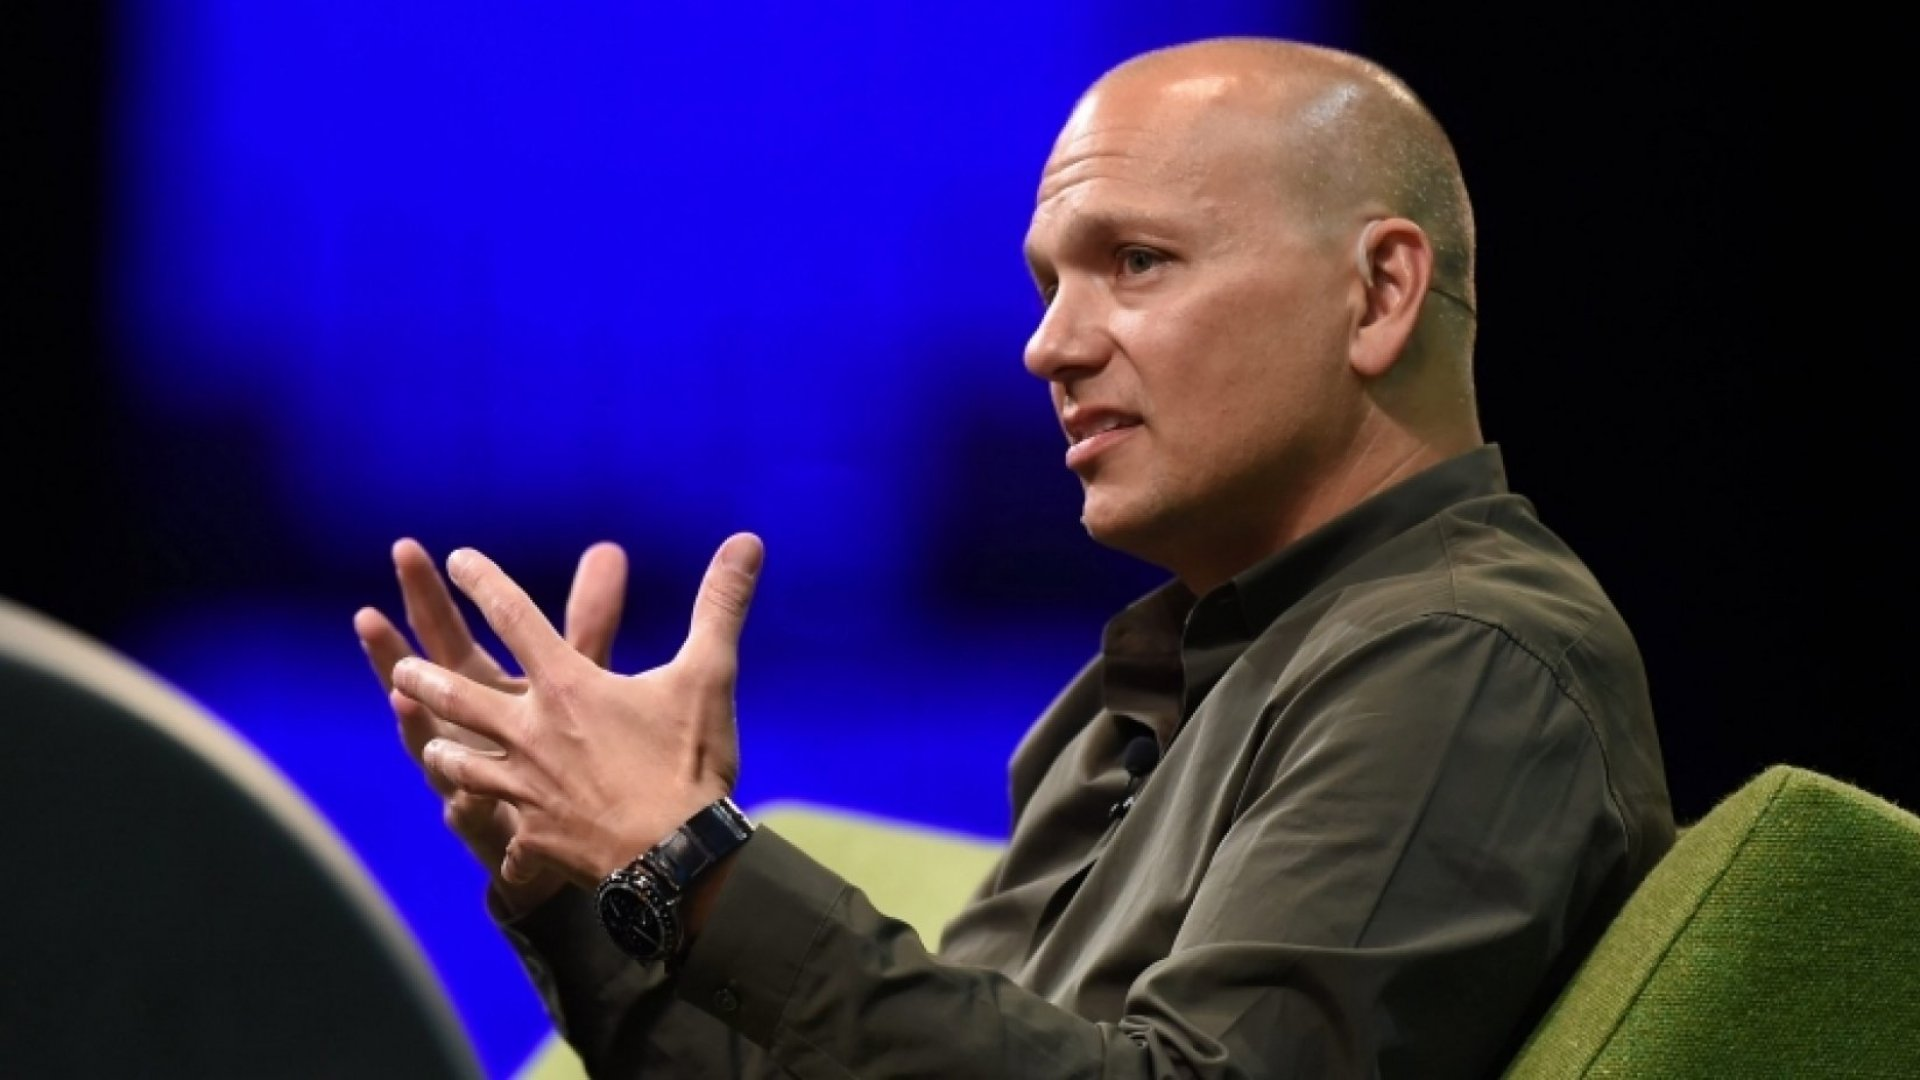 Tony Fadell's Departure From Nest Was Inevitable